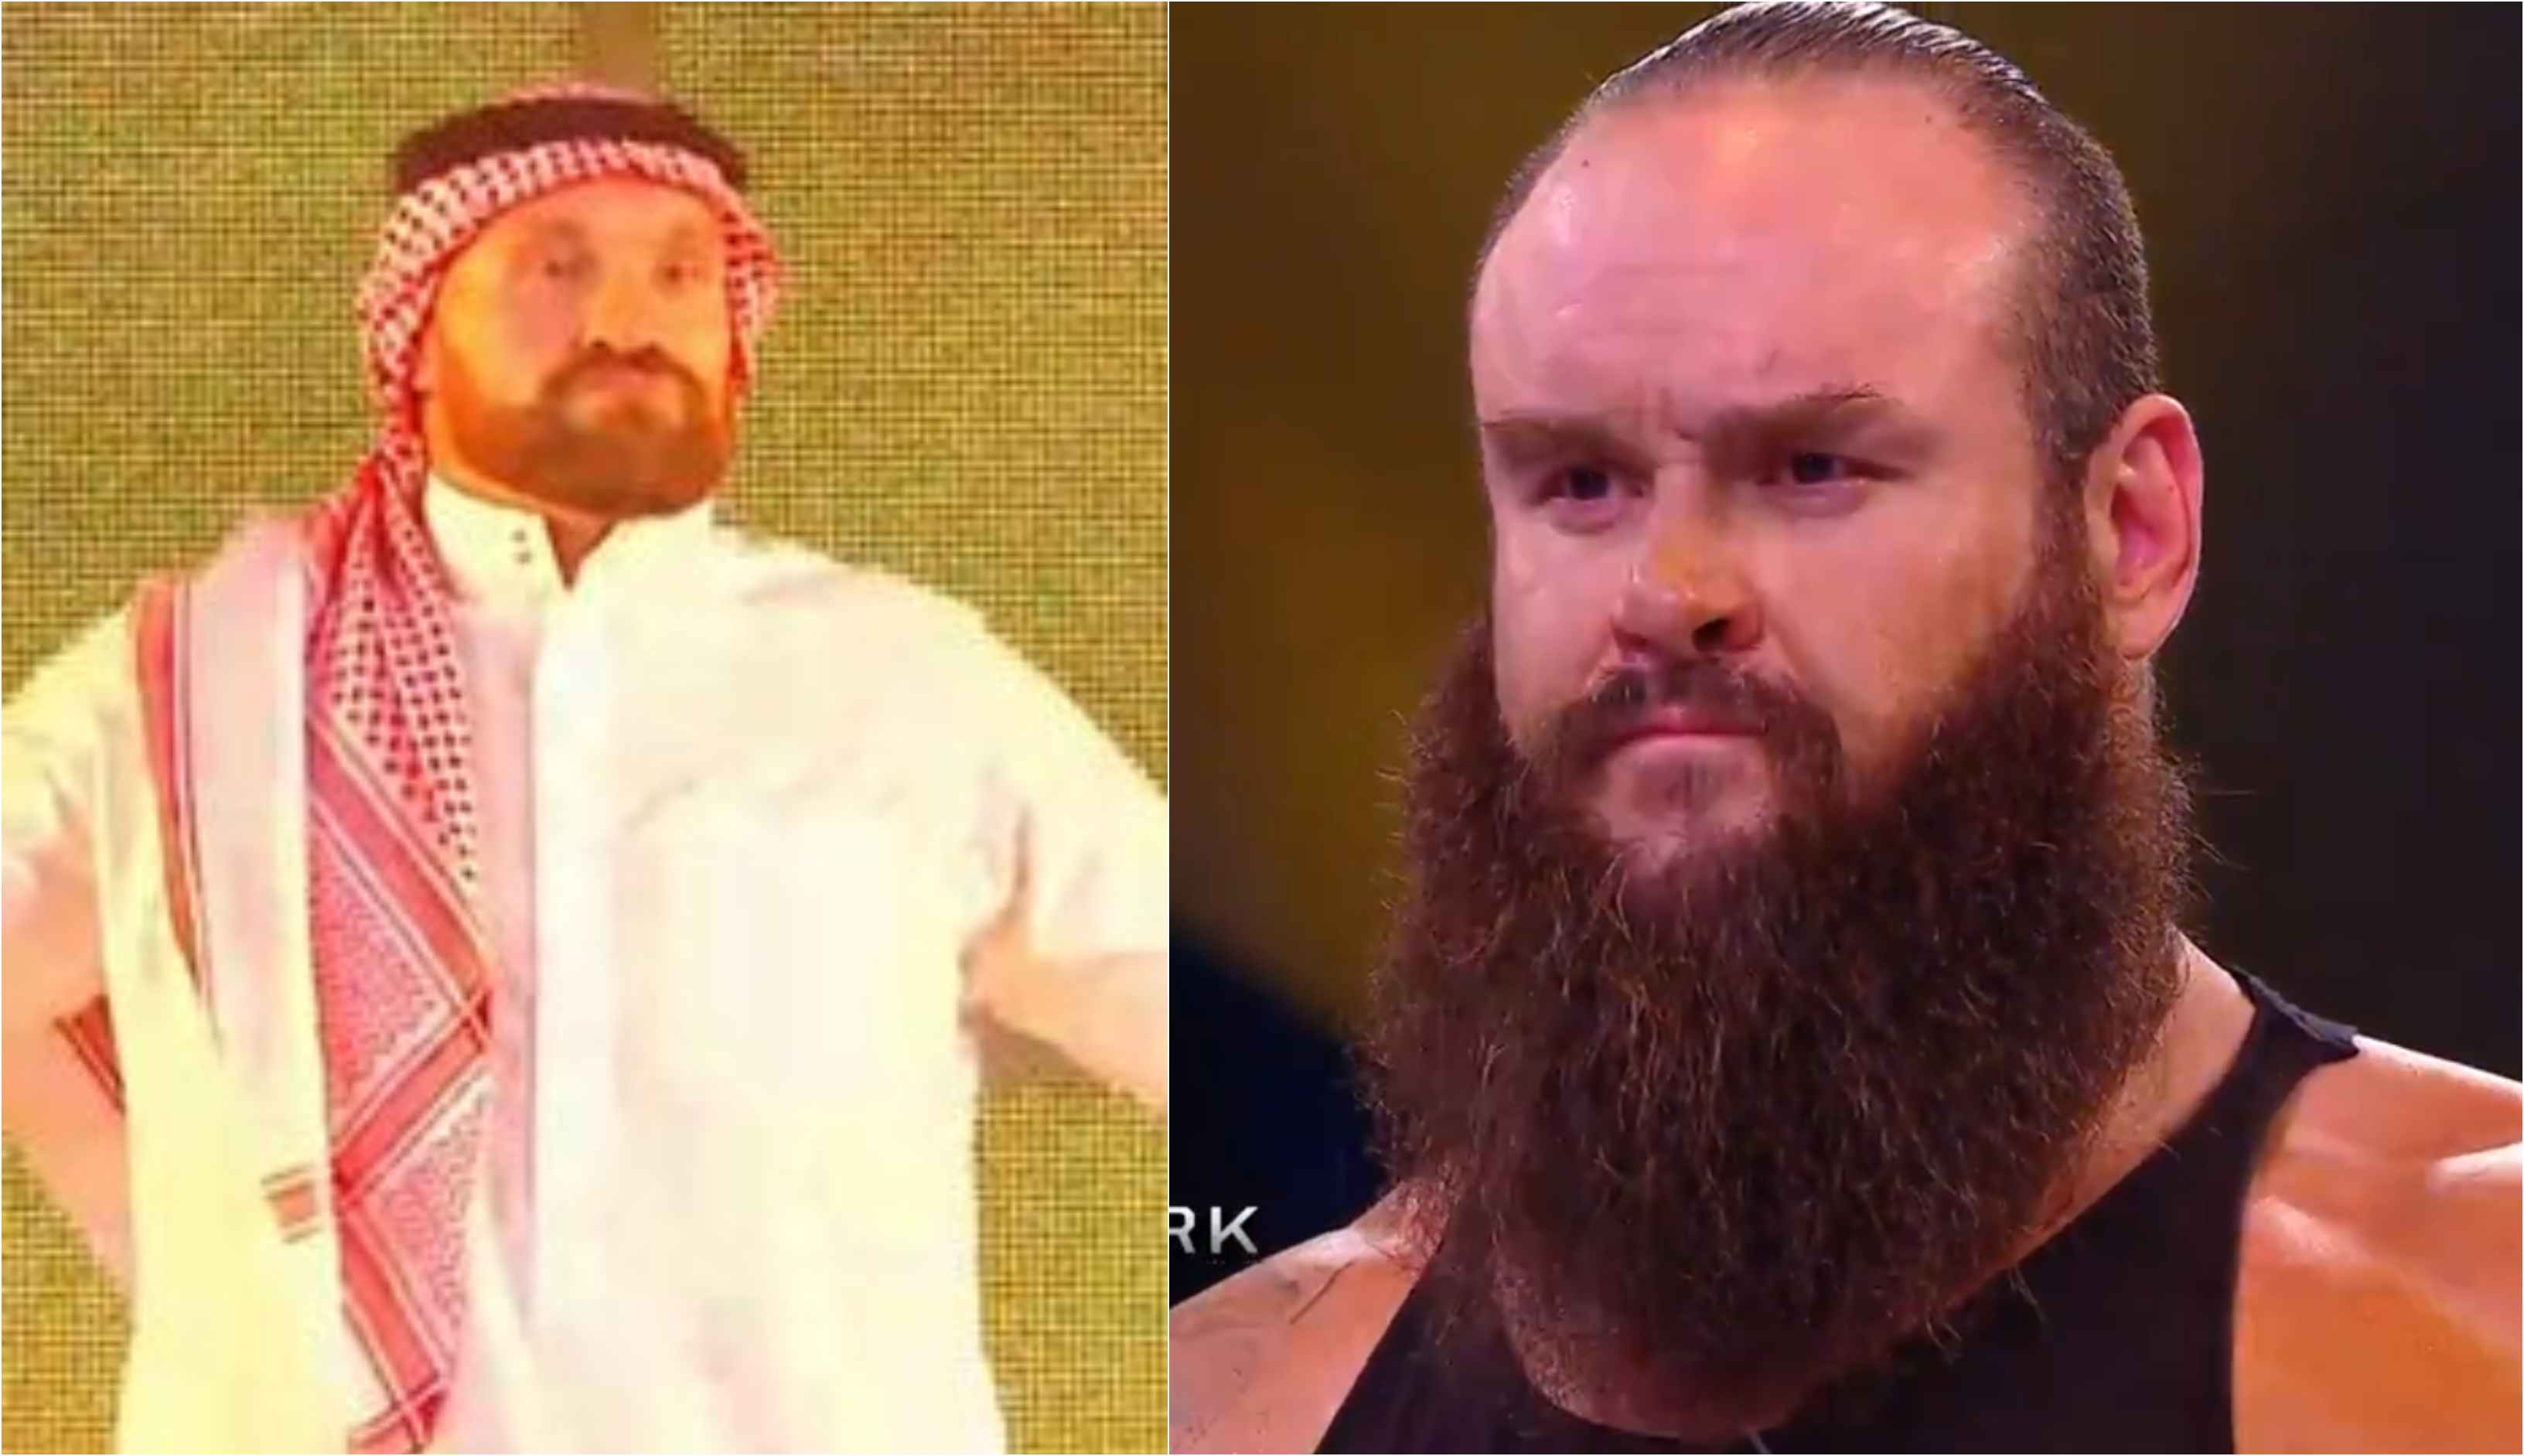 Tyson Fury knocks out Braun Strowman to win his WWE debut -